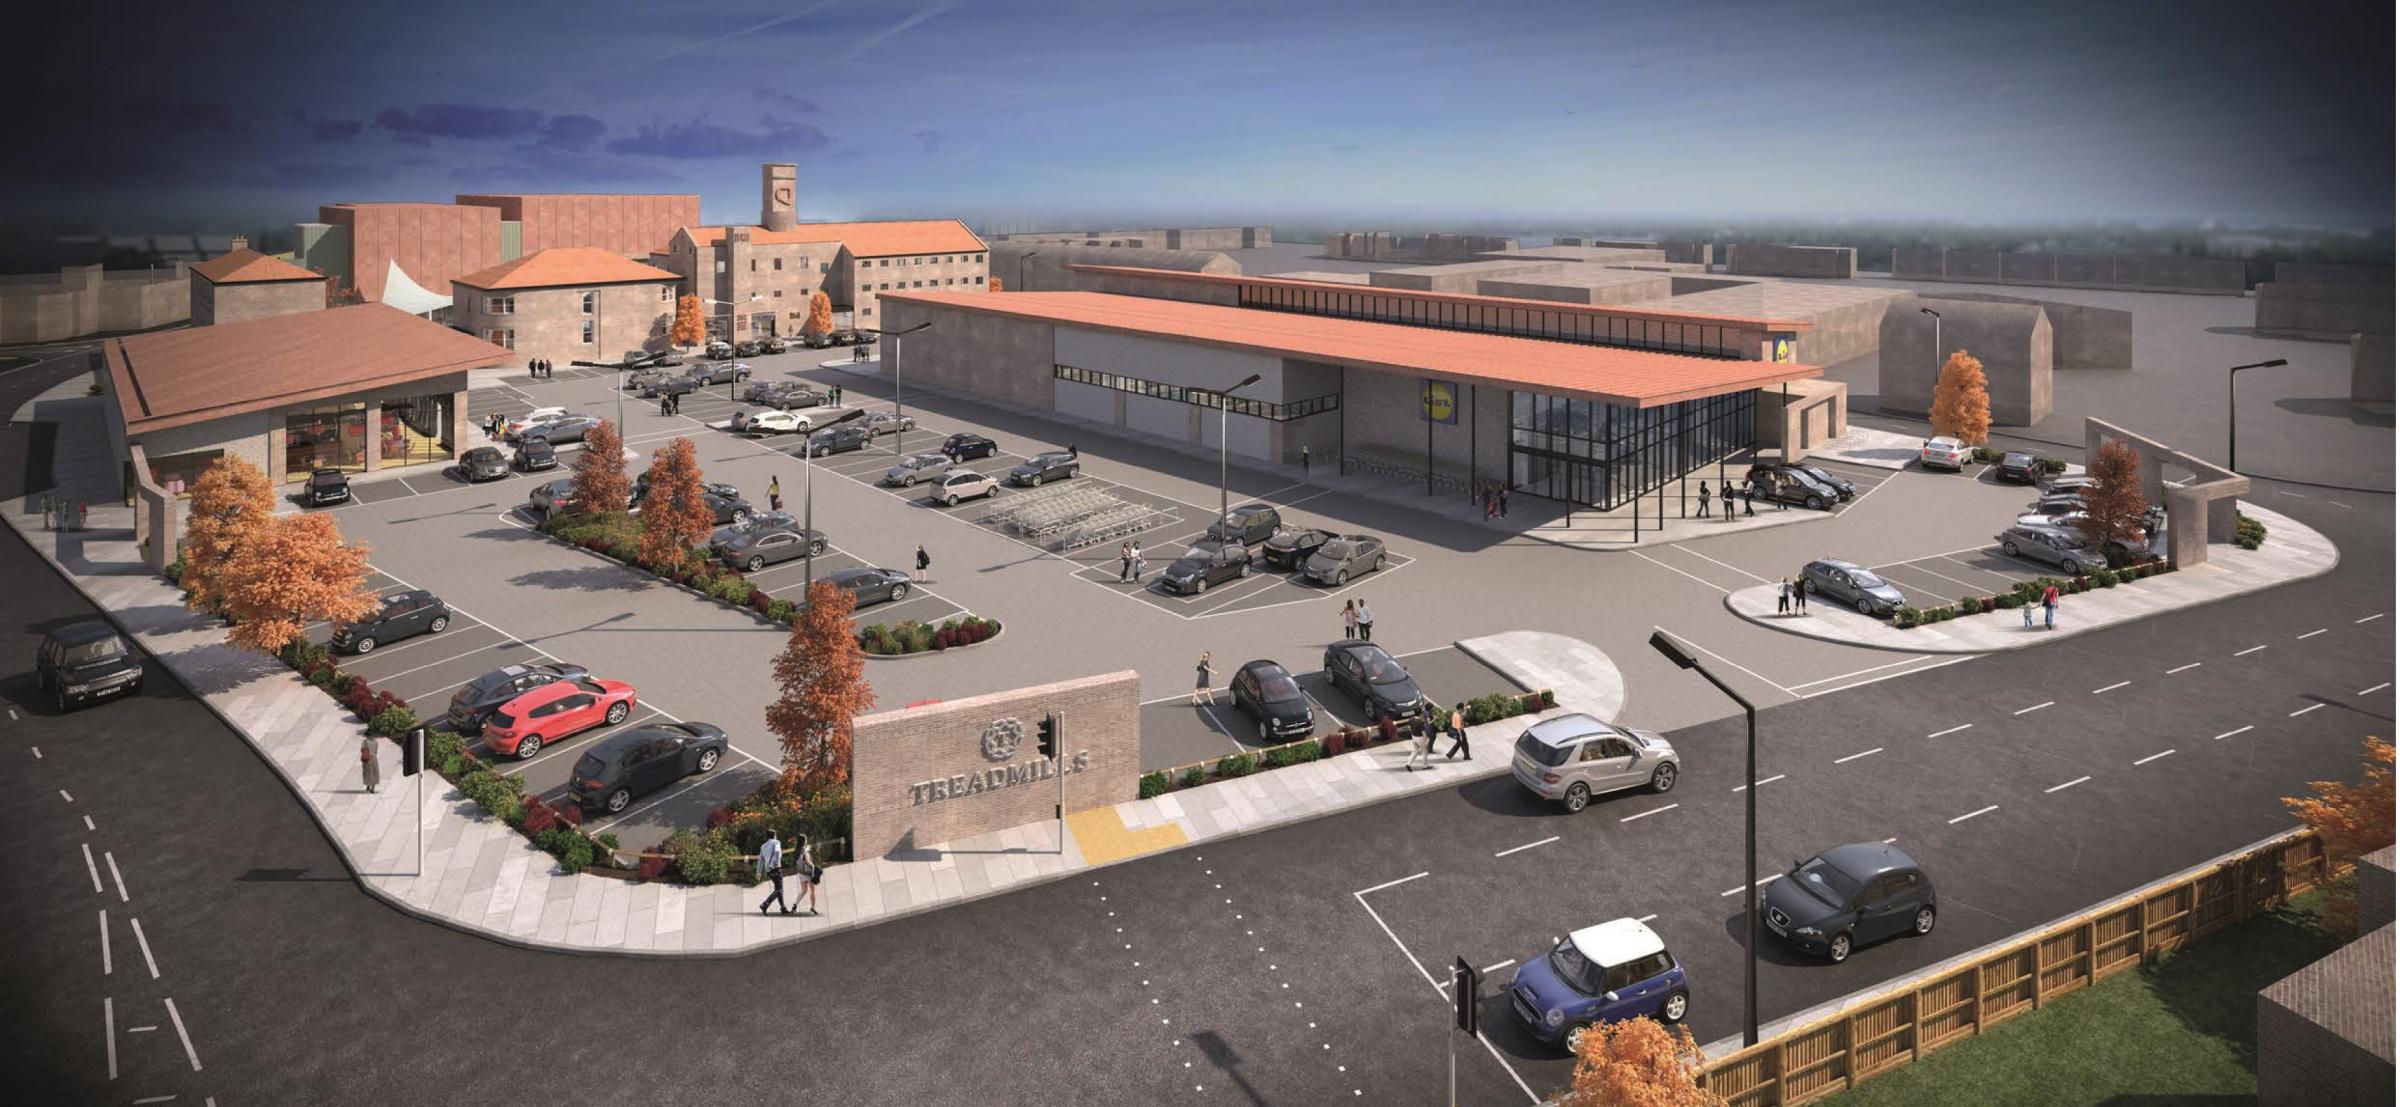 CENTRE: An artist's impression of the redeveloped former prison site in Northallerton, Treadmills, where Lidl is due to be the anchor store